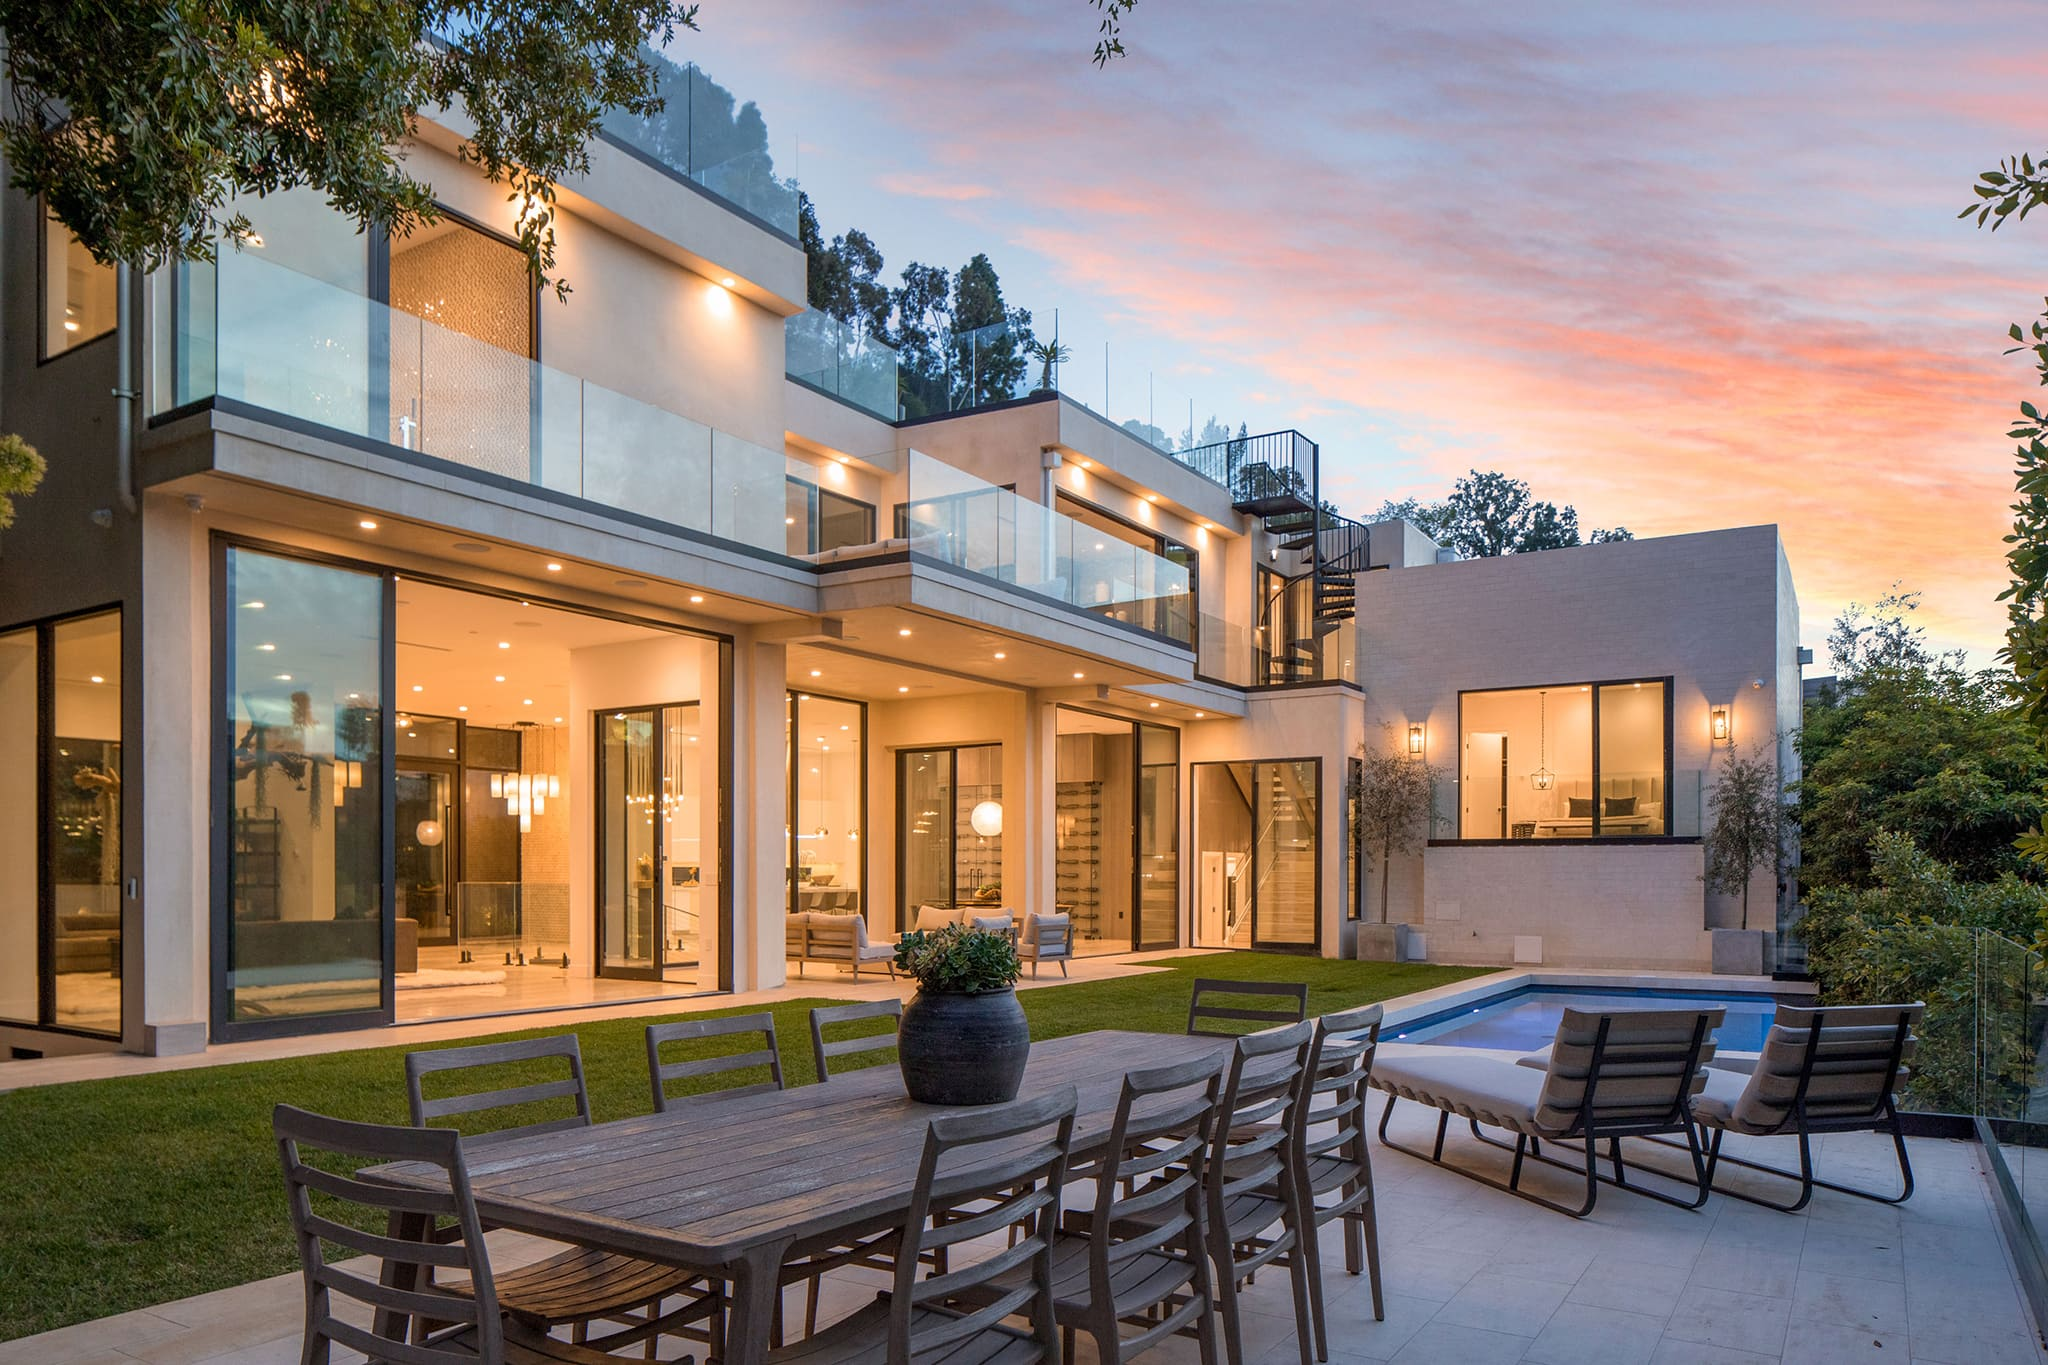 Brooklyn Beckham and Nicola Peltz's 7,700 square-foot mansion has five bedrooms, five bathrooms, an infinity pool, and more